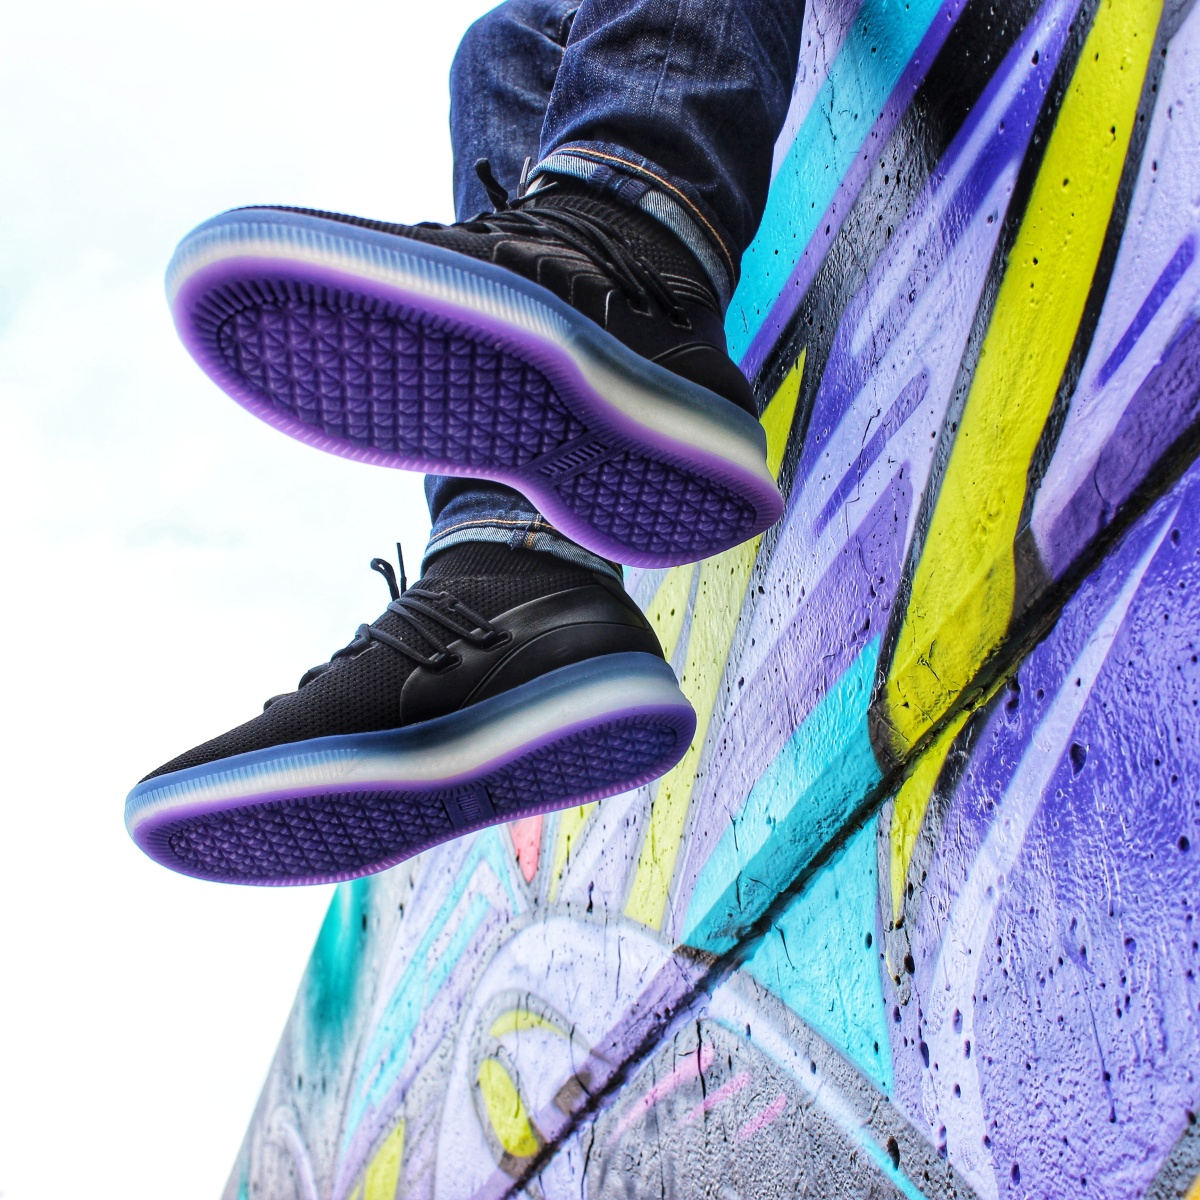 2bd0c6247d6 Puma jumps back into Basketball with the Clyde Court Disrupt – Sneaker  Closet